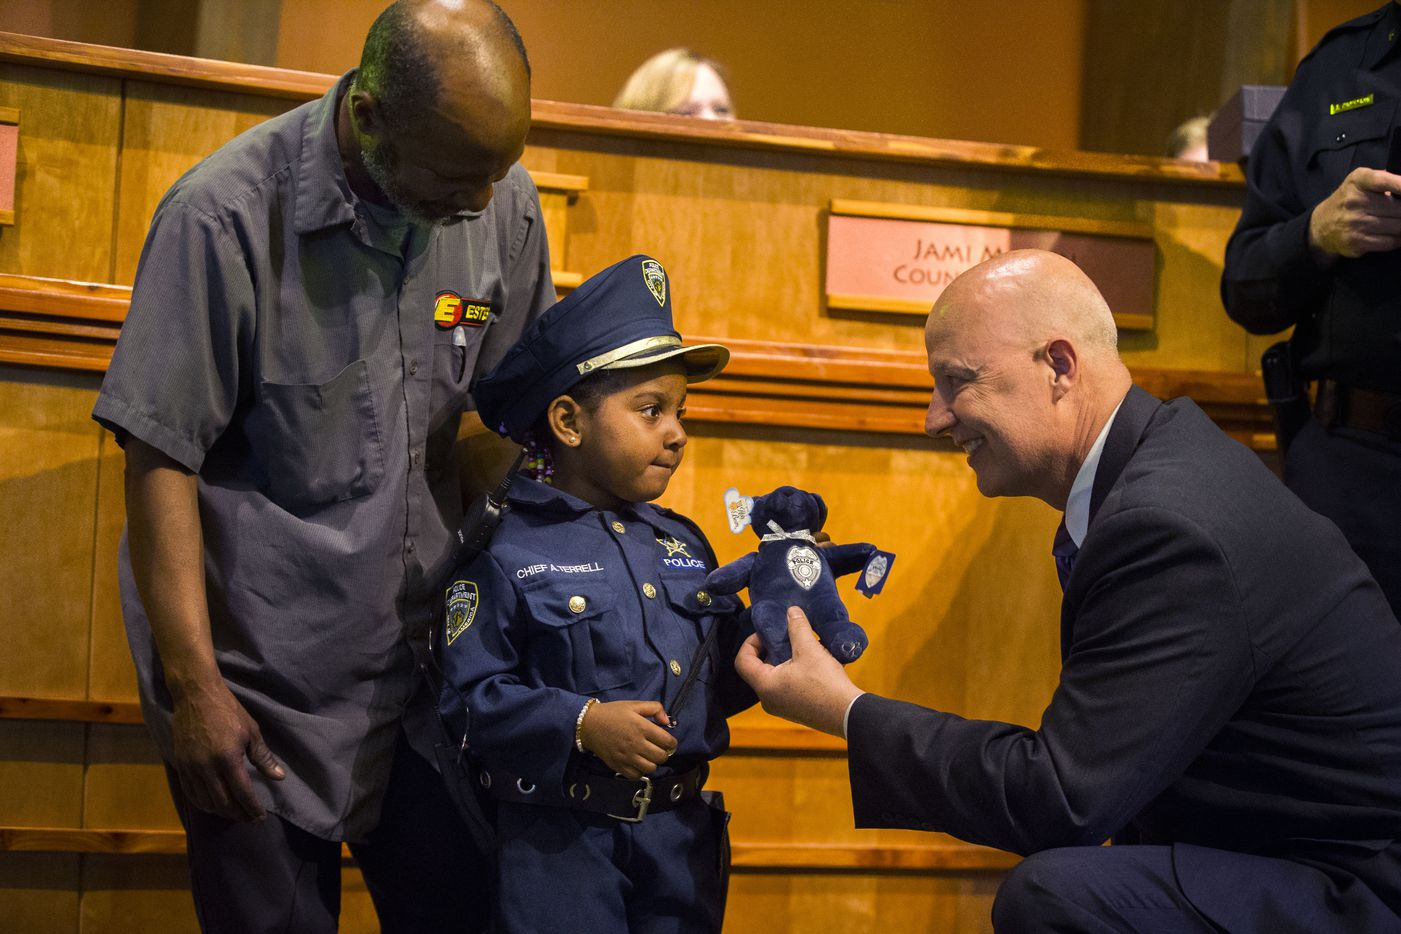 """Four-year-old Ah'Maya Terrell received a stuffed animal from Ely Reyes, the incoming Cedar Hill police chief, after Ah'Maya was designated as the Cedar Hill Police Department's """"chief for a day"""" during a City Council meeting on March 26, 2019."""